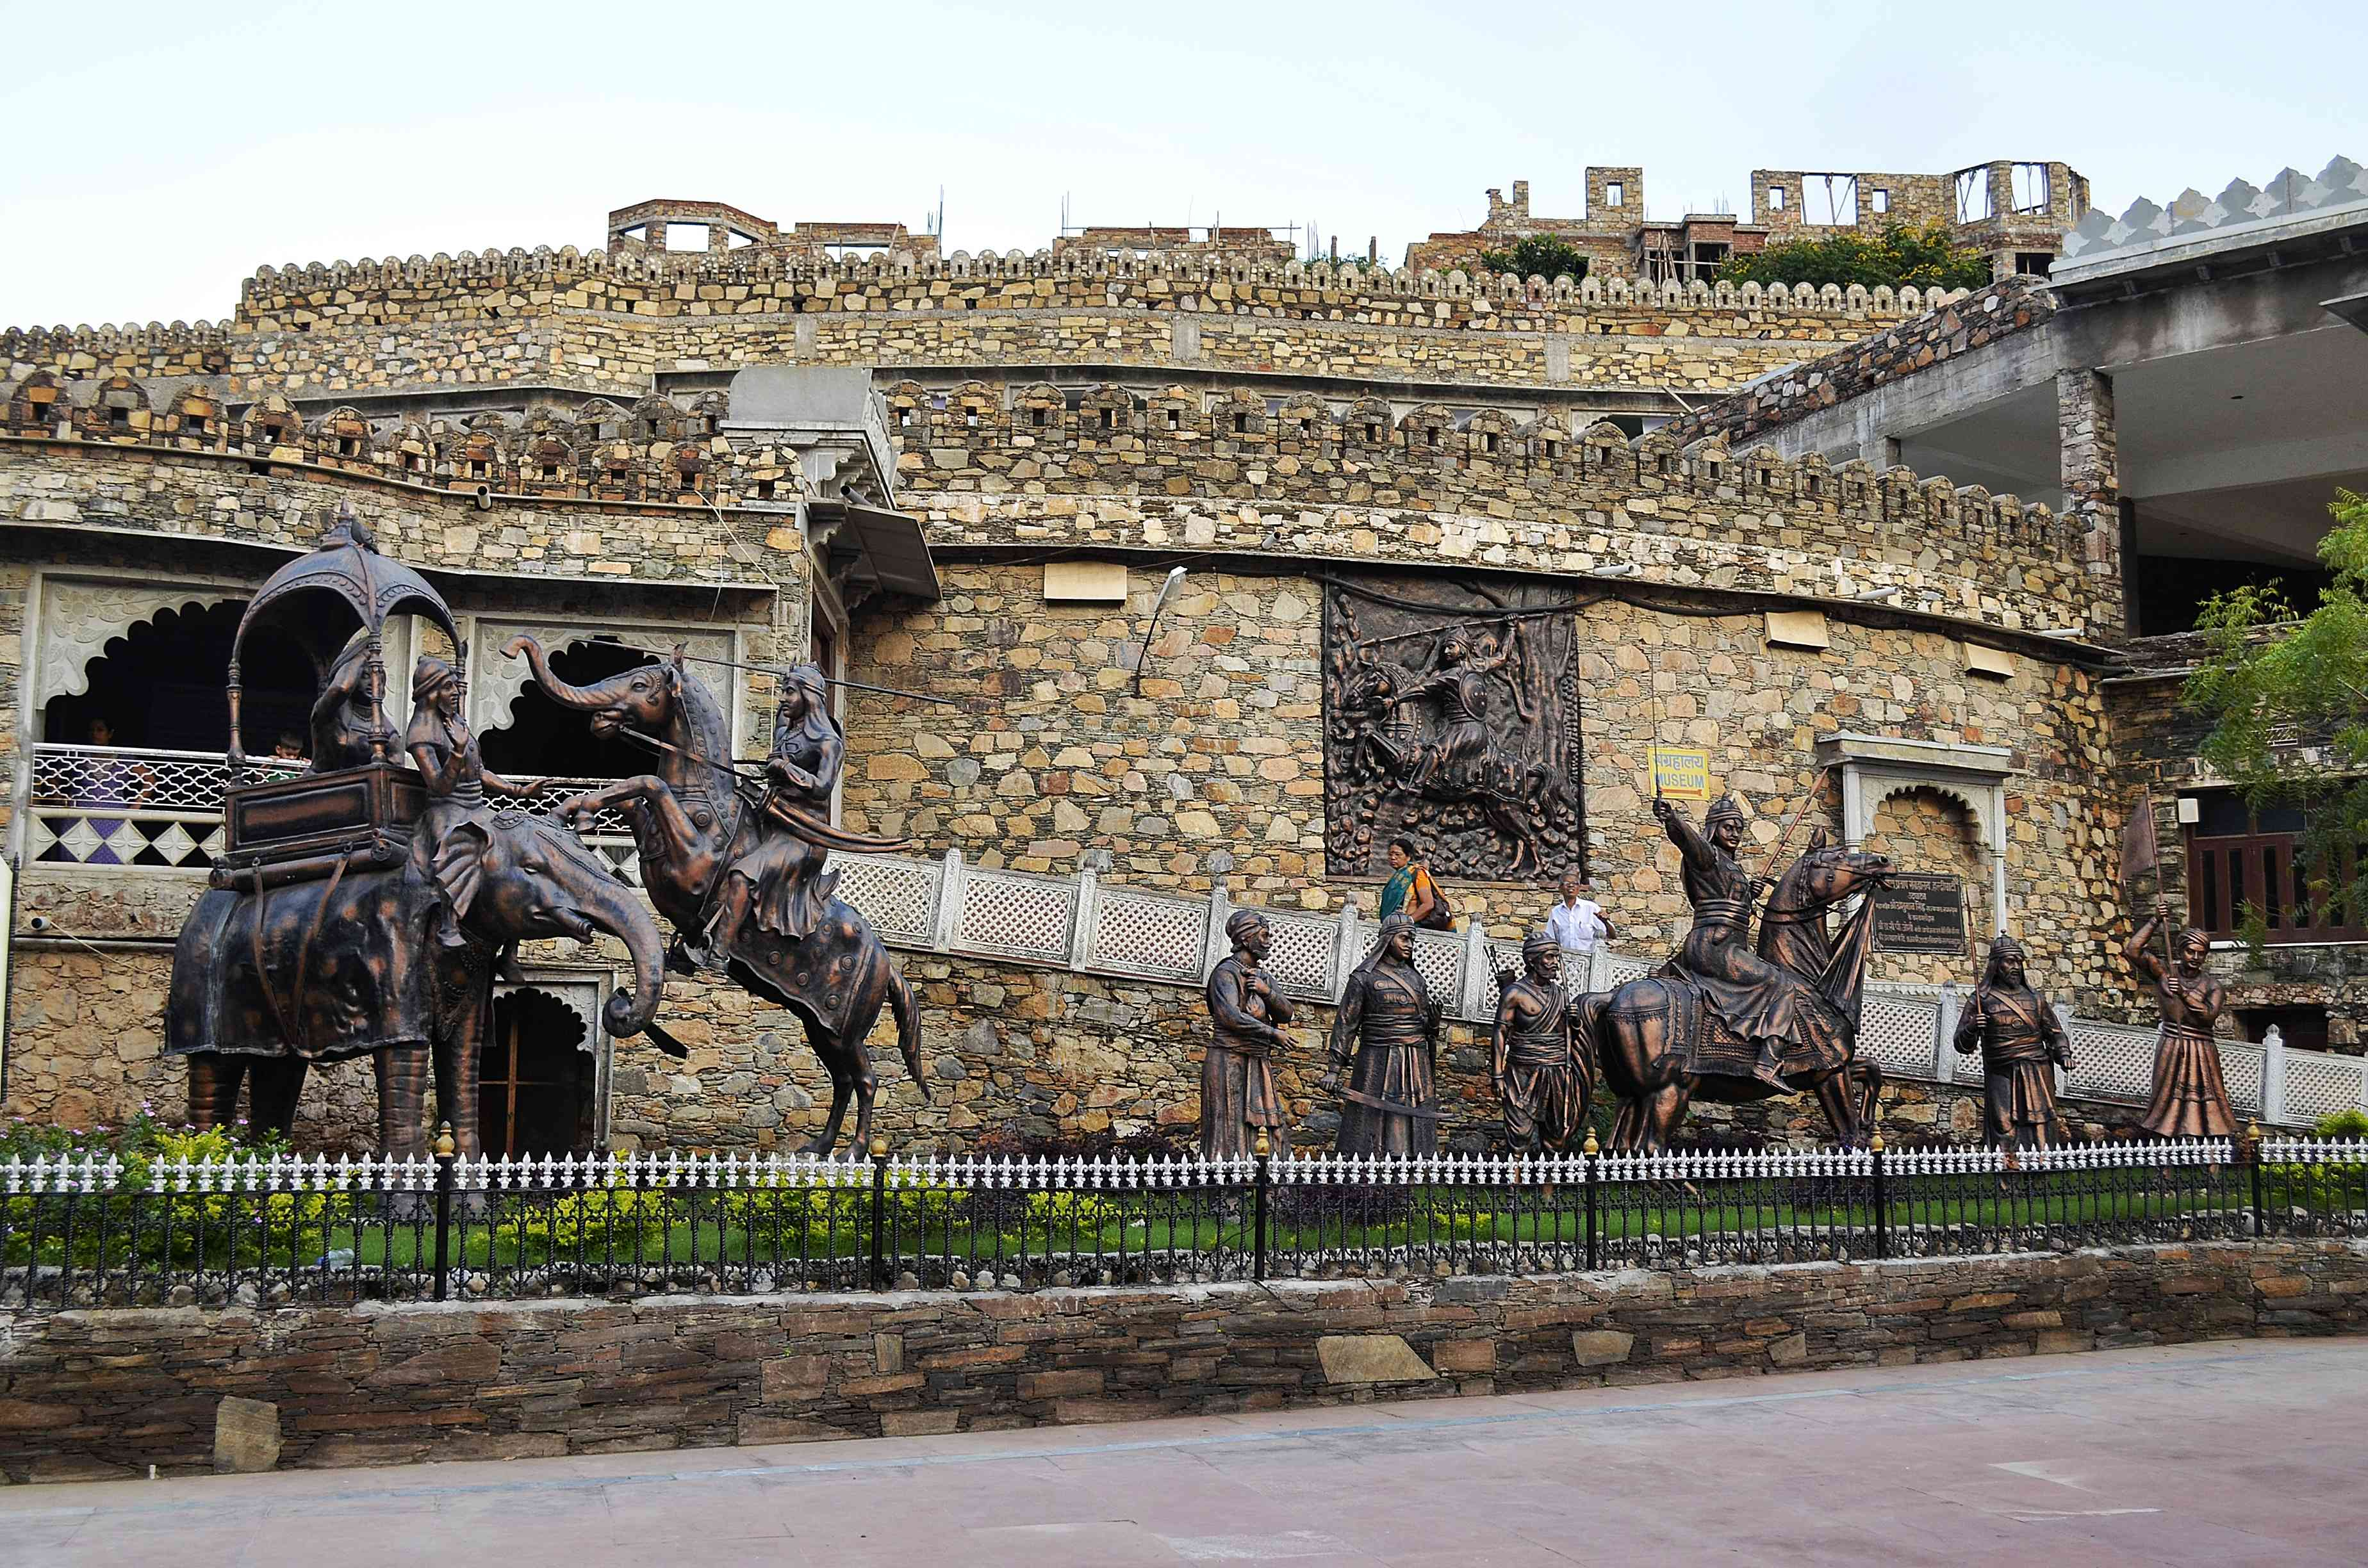 bronze statues of horses and people in front of the stone building (Maharana Pratap Museum)